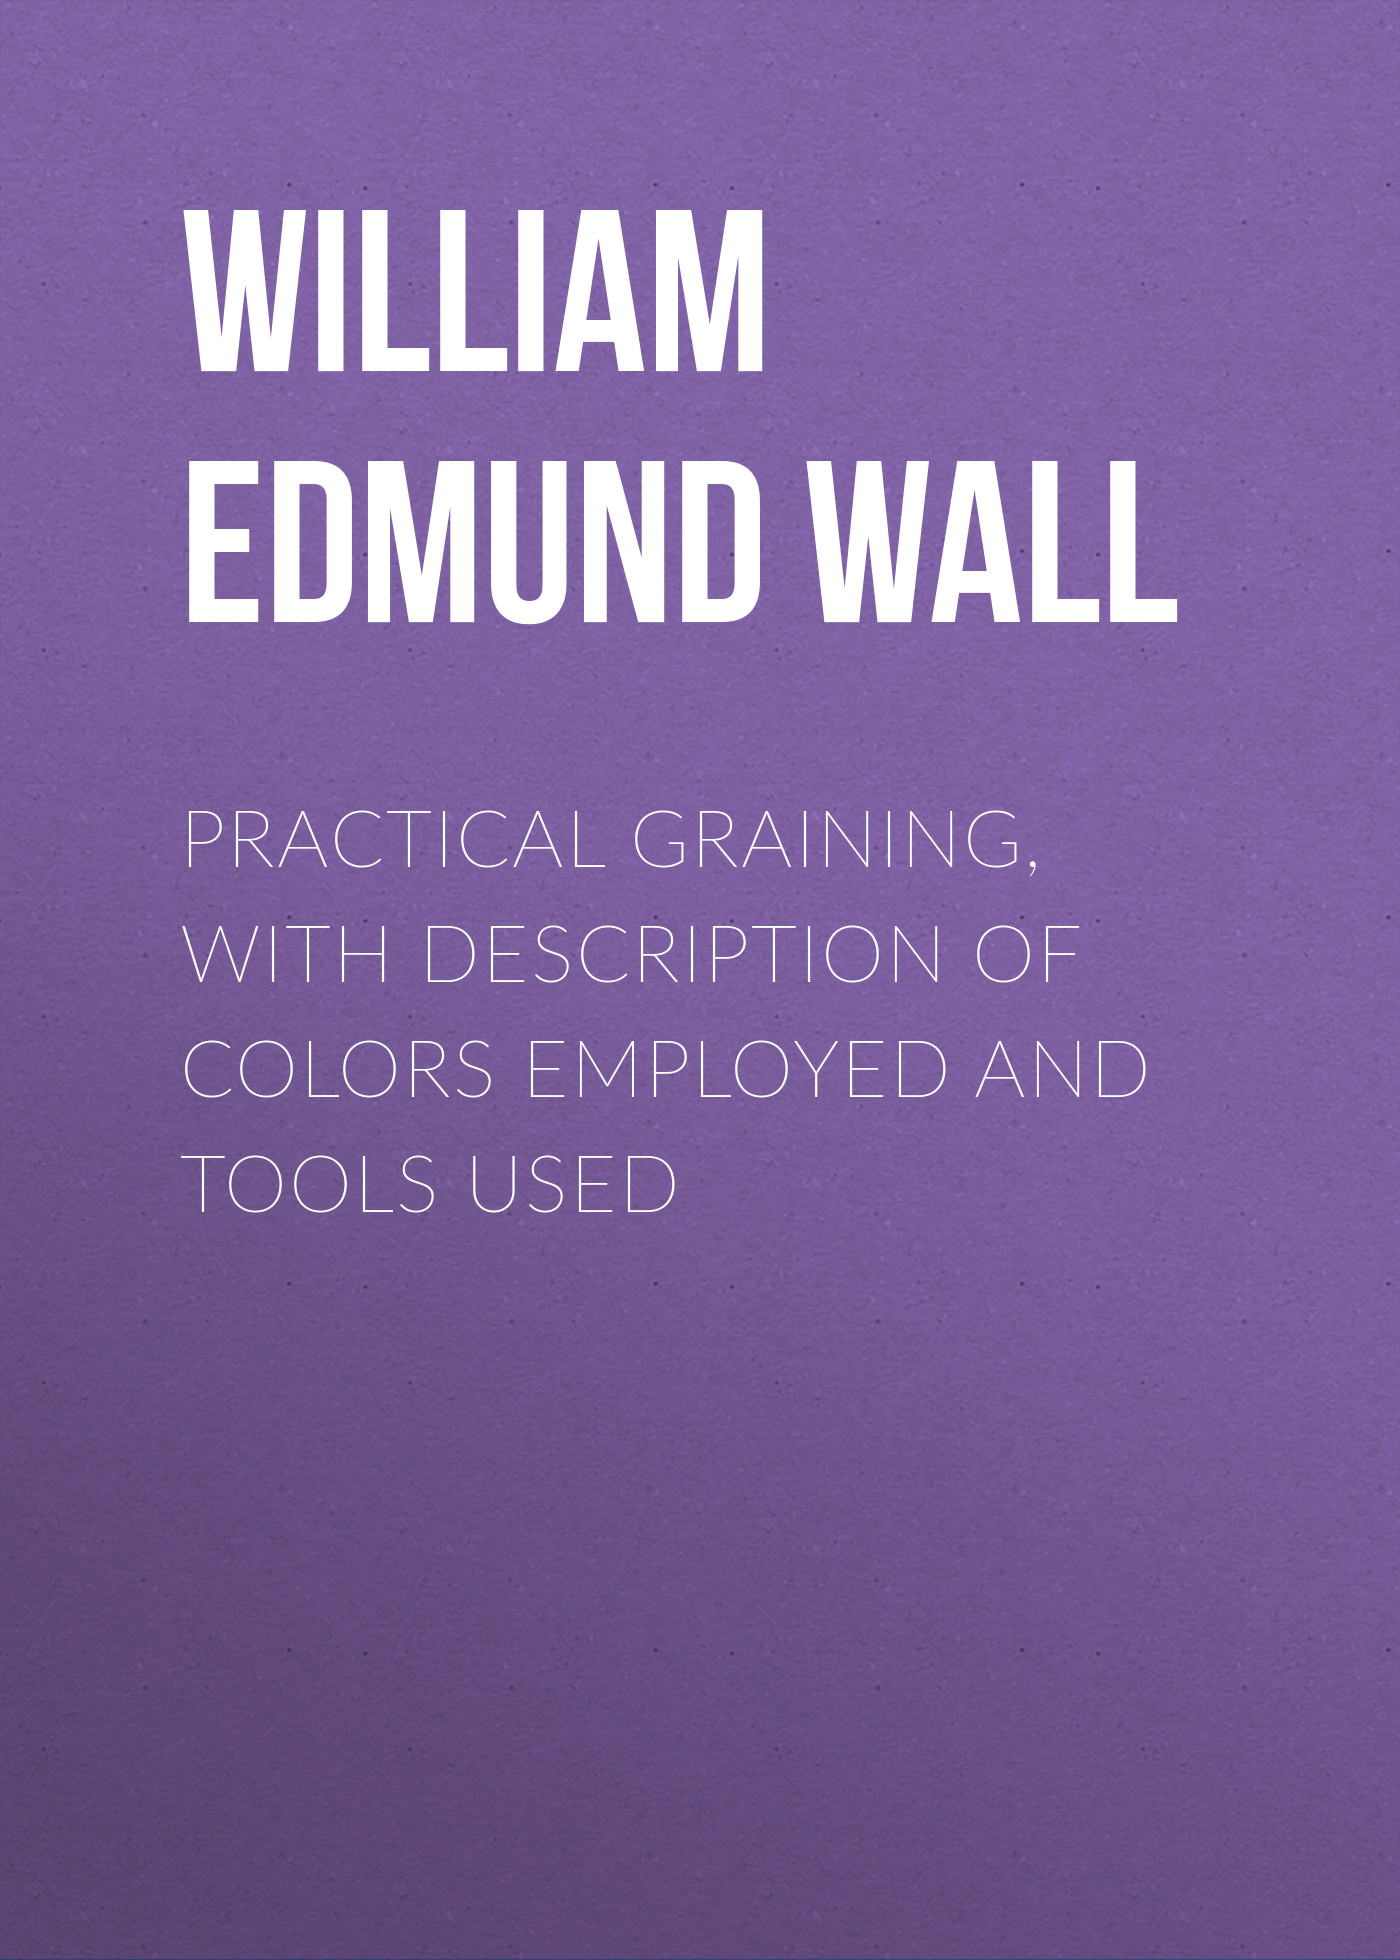 William Edmund Wall Practical Graining, with Description of Colors Employed and Tools Used